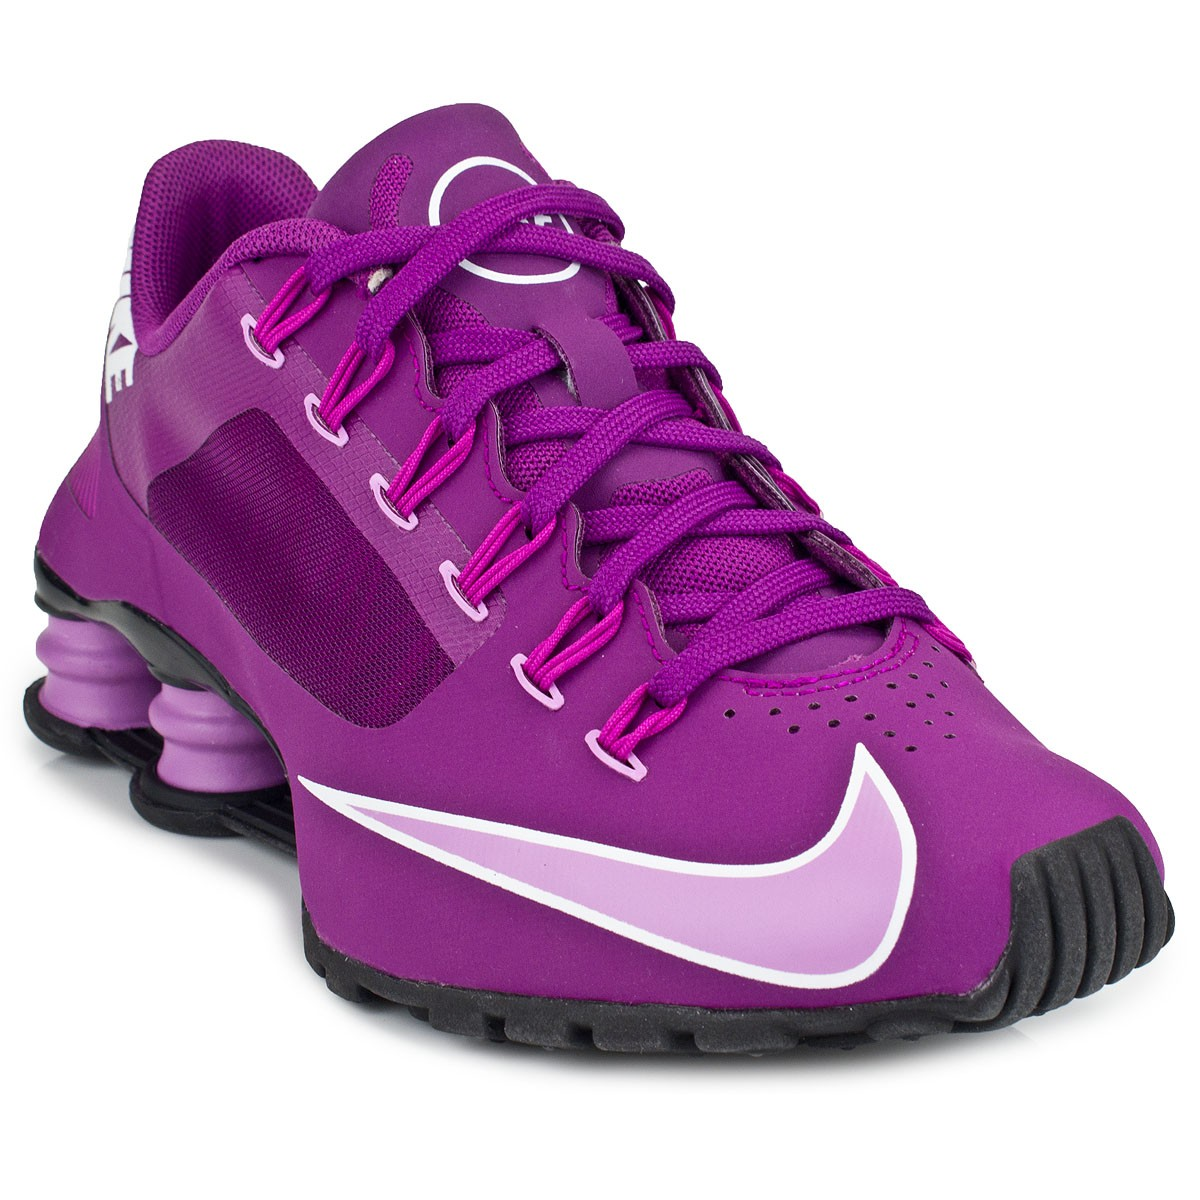 low priced fea75 38a48 nike shox superfly r4 roxo